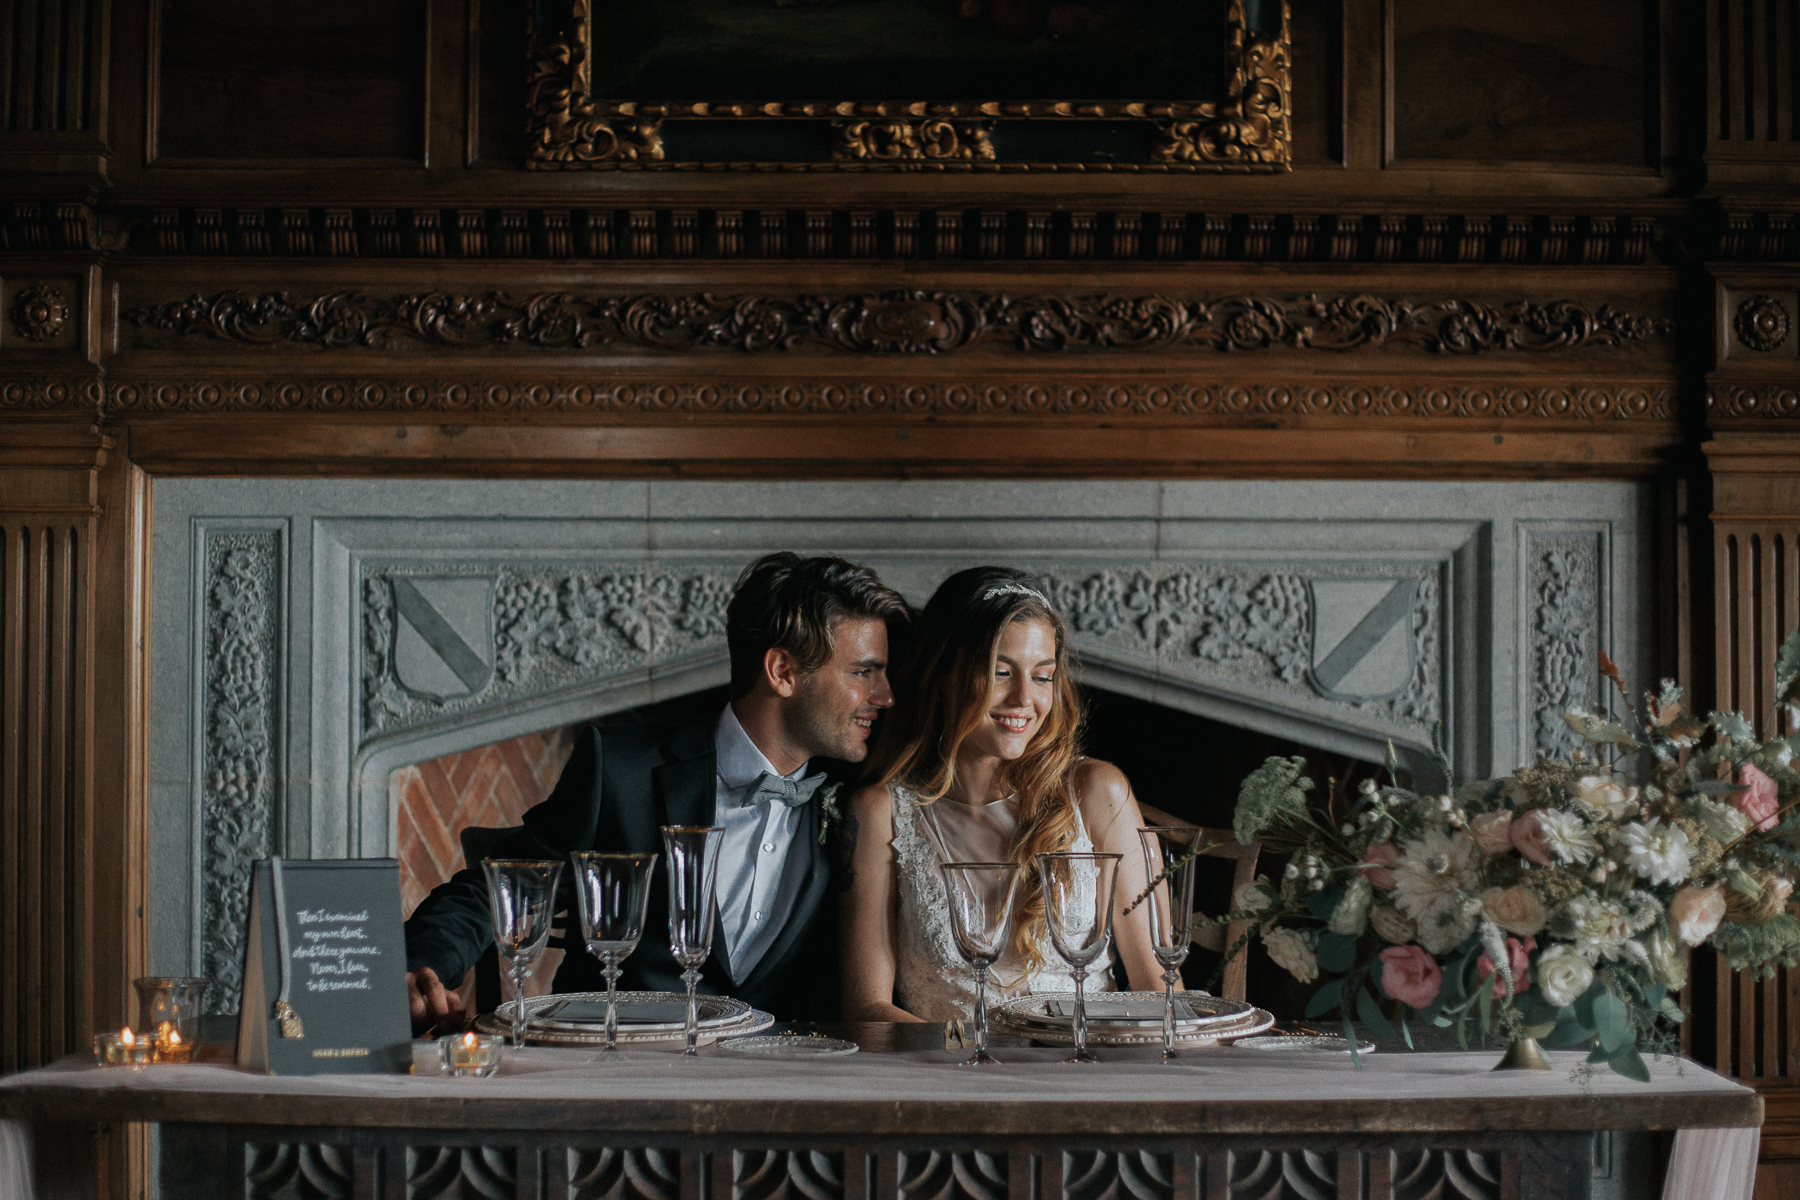 romantic wedding inspiratin barcelona